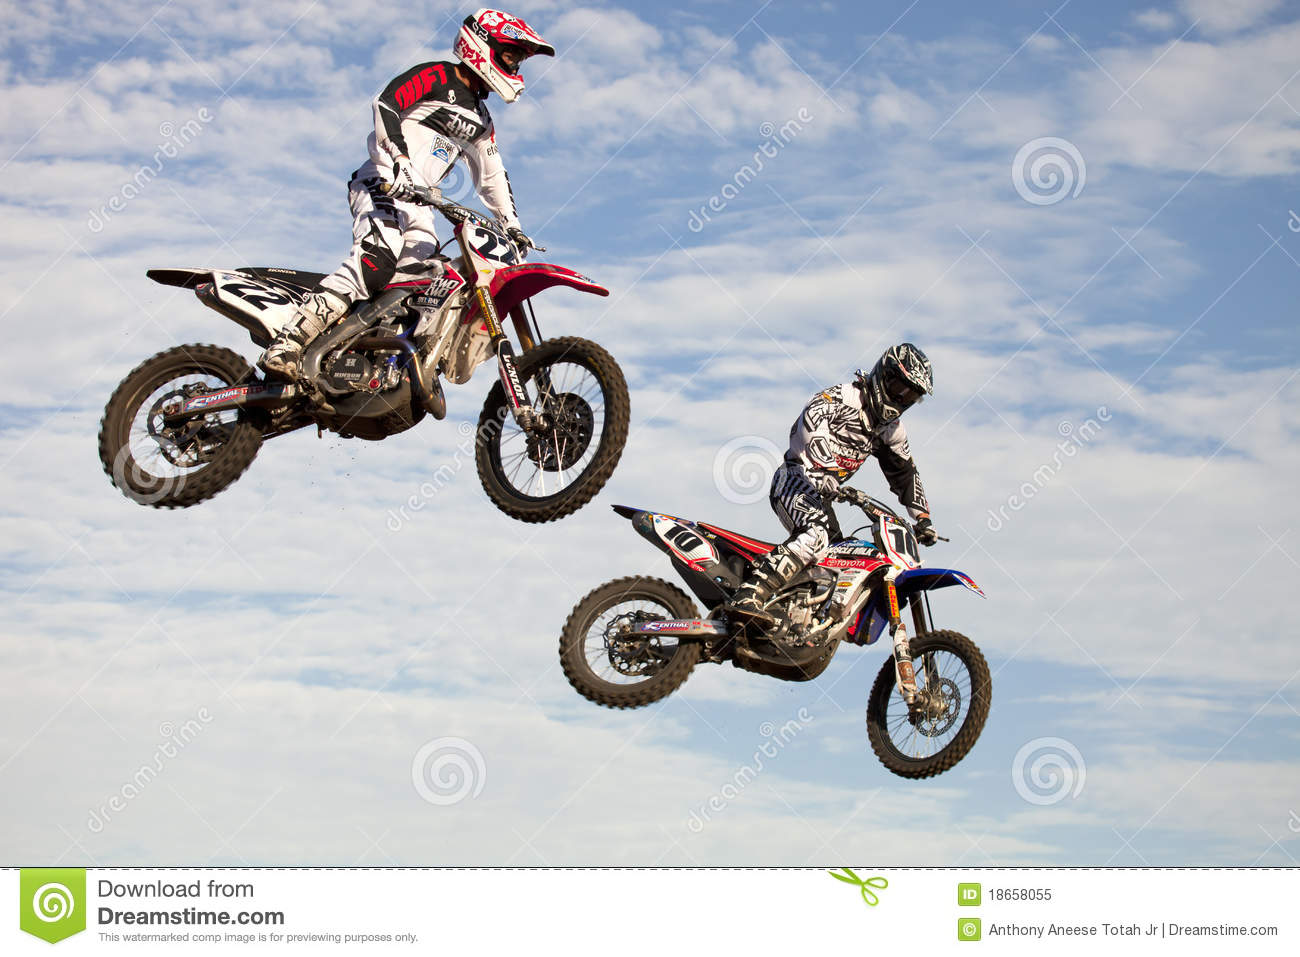 jumping bikes at supercross editorial image image 18658055. Black Bedroom Furniture Sets. Home Design Ideas